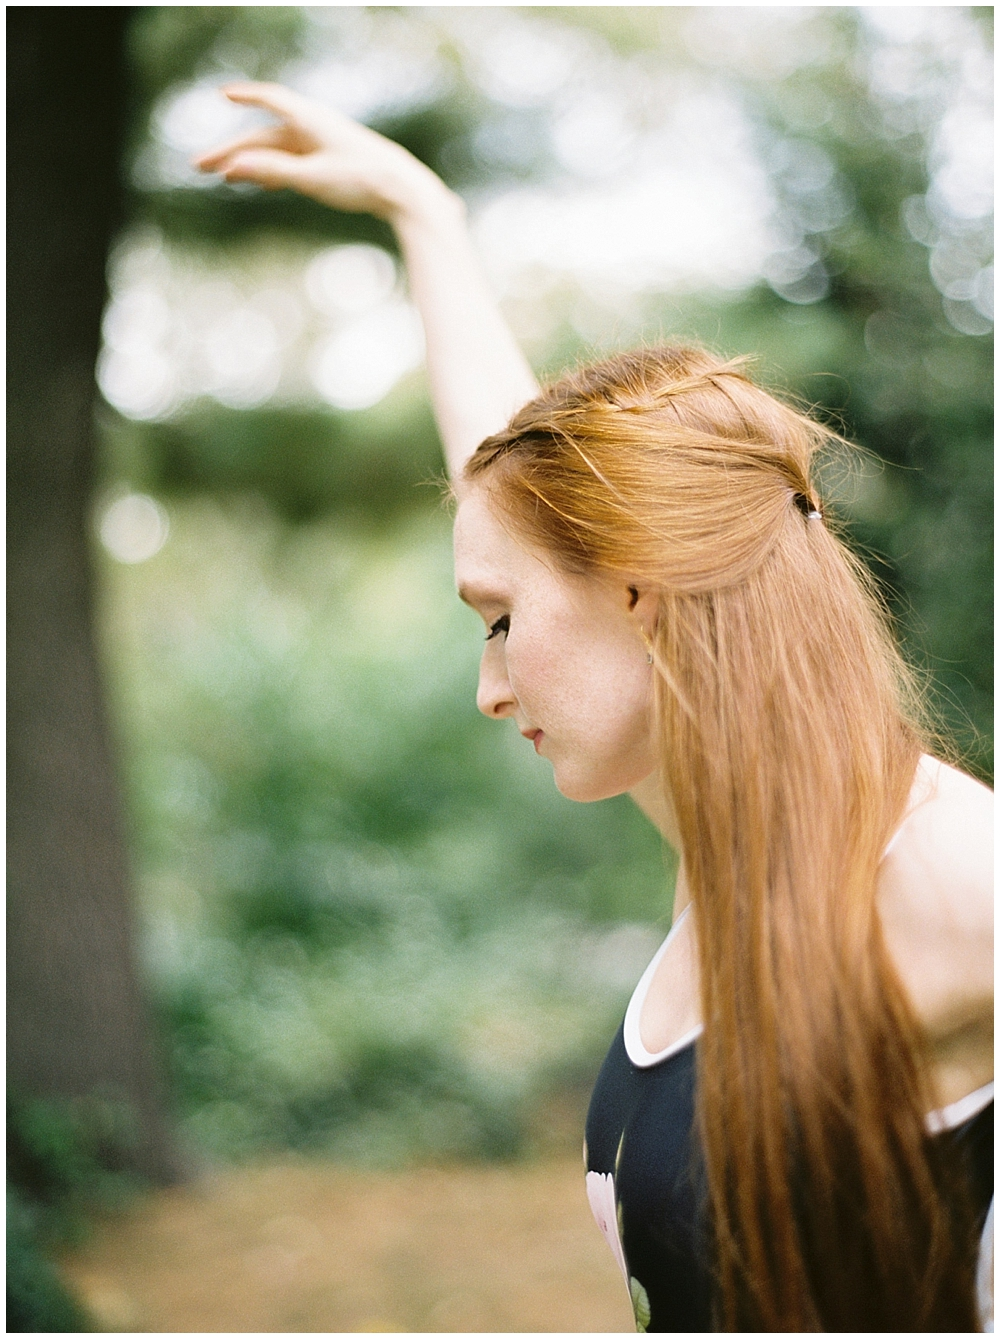 Fine Art Film Wedding Photographer | Sarah Carpenter Ballet Photography | New York City Photography & Destinations Worldwide